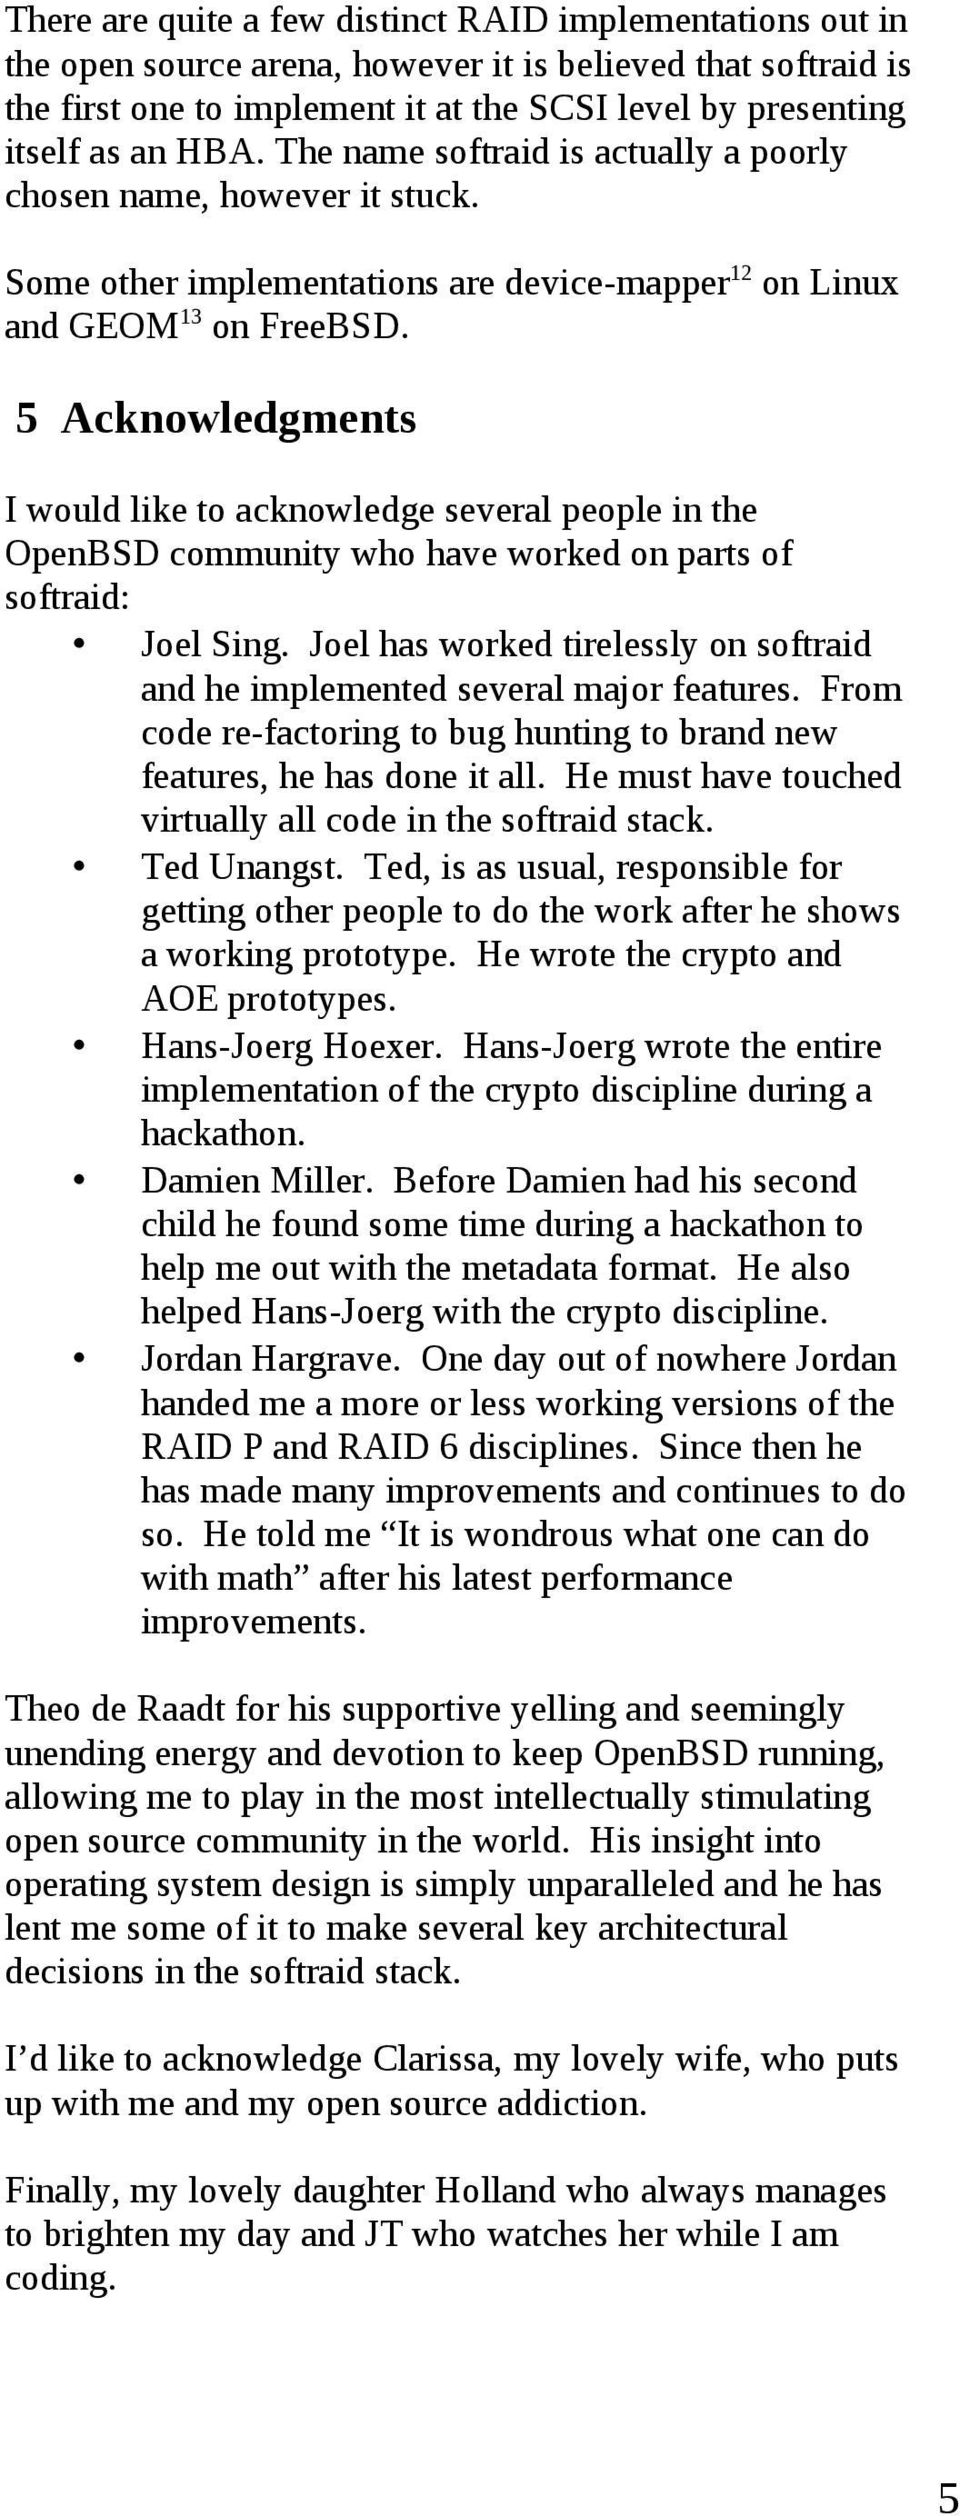 5 Acknowledgments I would like to acknowledge several people in the OpenBSD community who have worked on parts of softraid: Joel Sing.